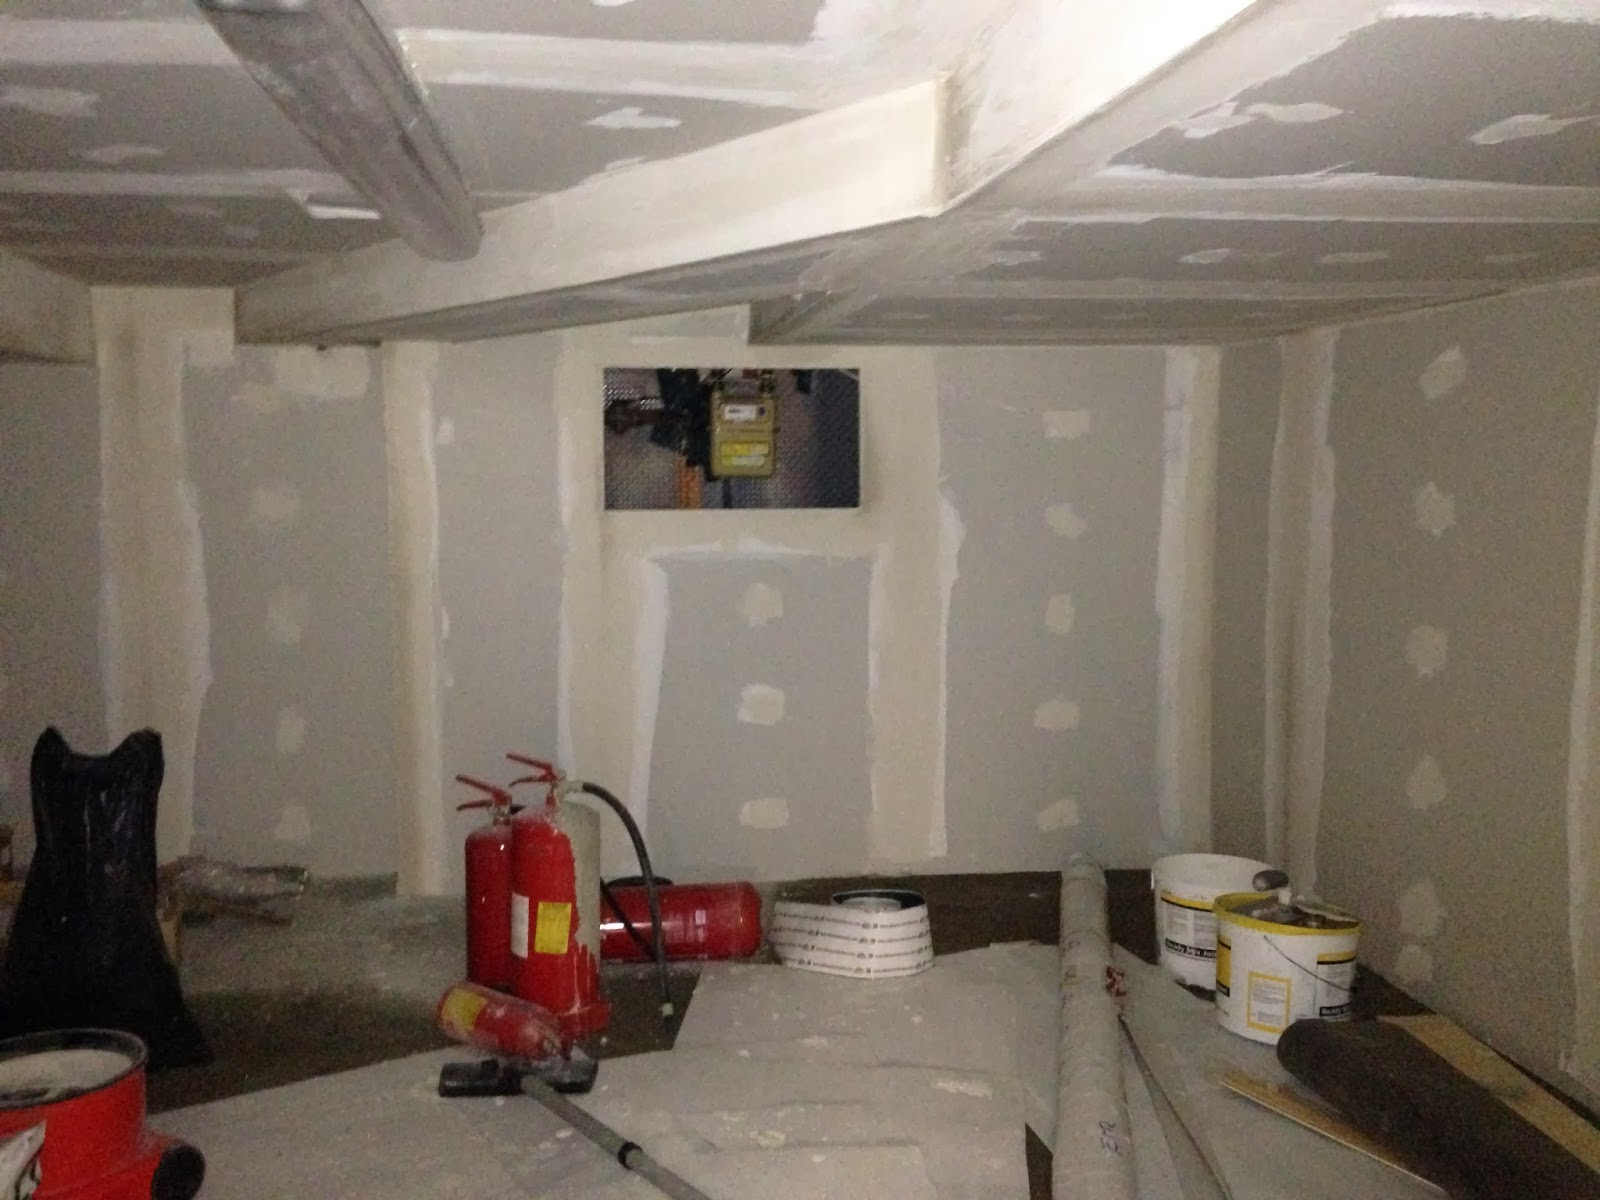 jointing complete to basement awaiting hatch to gas meter location